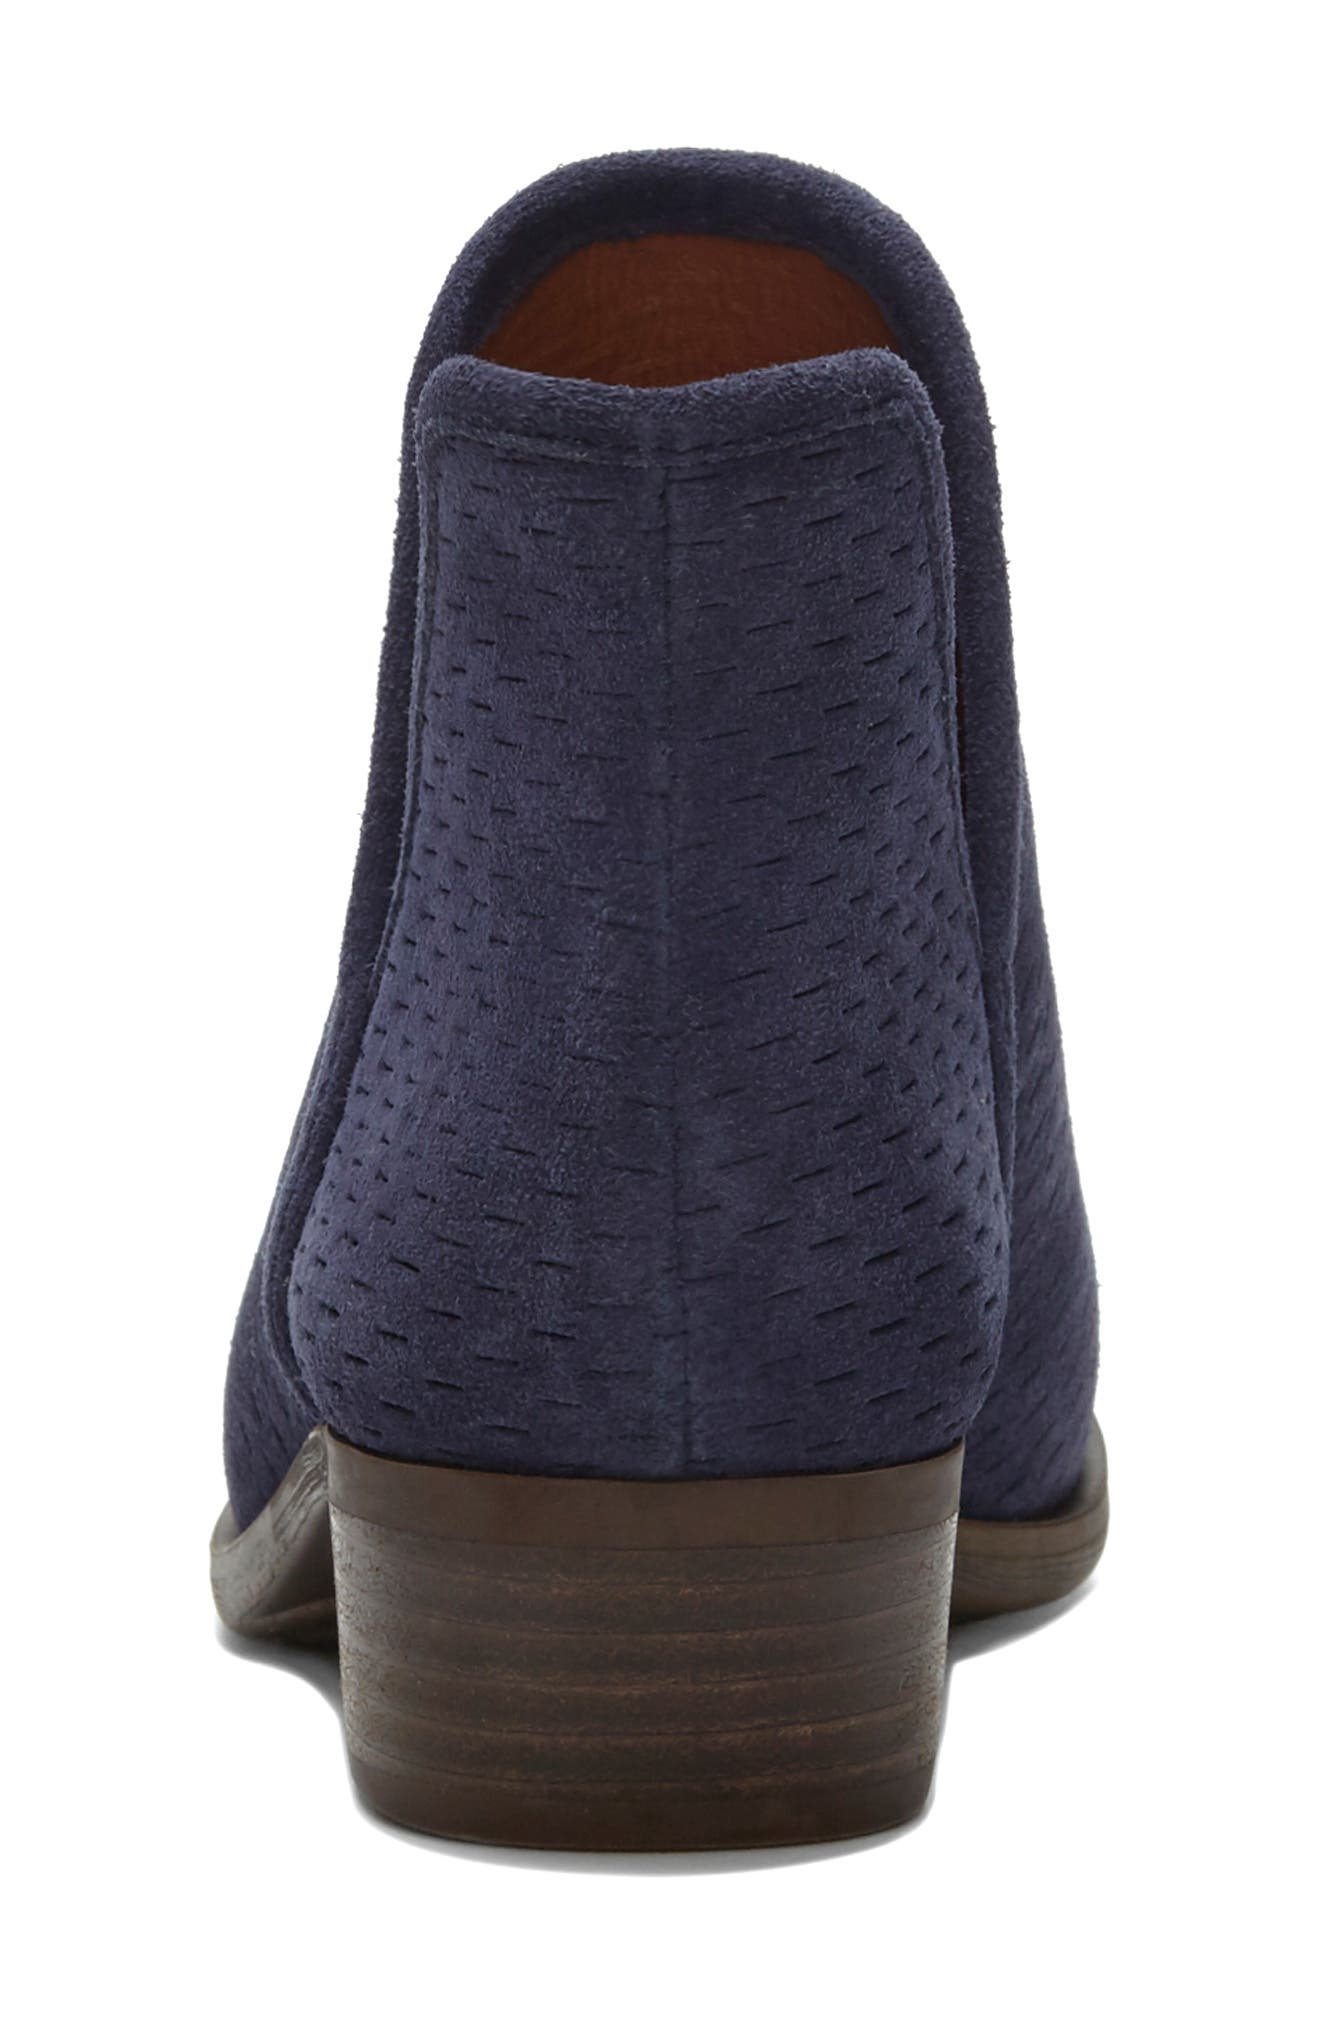 Baley Bootie,                             Alternate thumbnail 5, color,                             MOROCCAN BLUE SUEDE